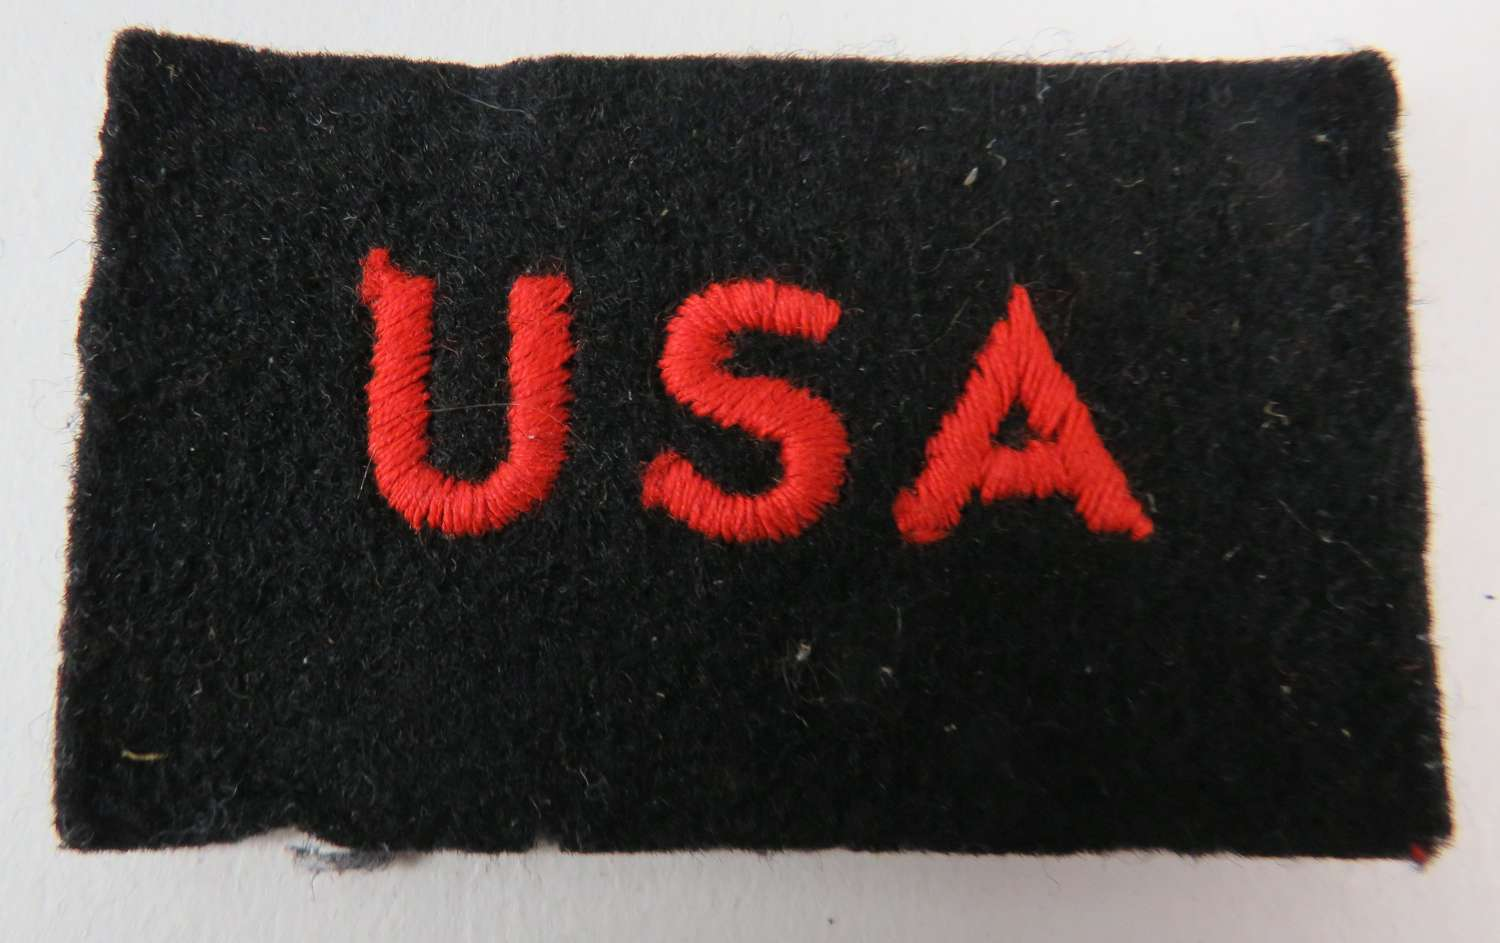 U.S.A Shoulder Title